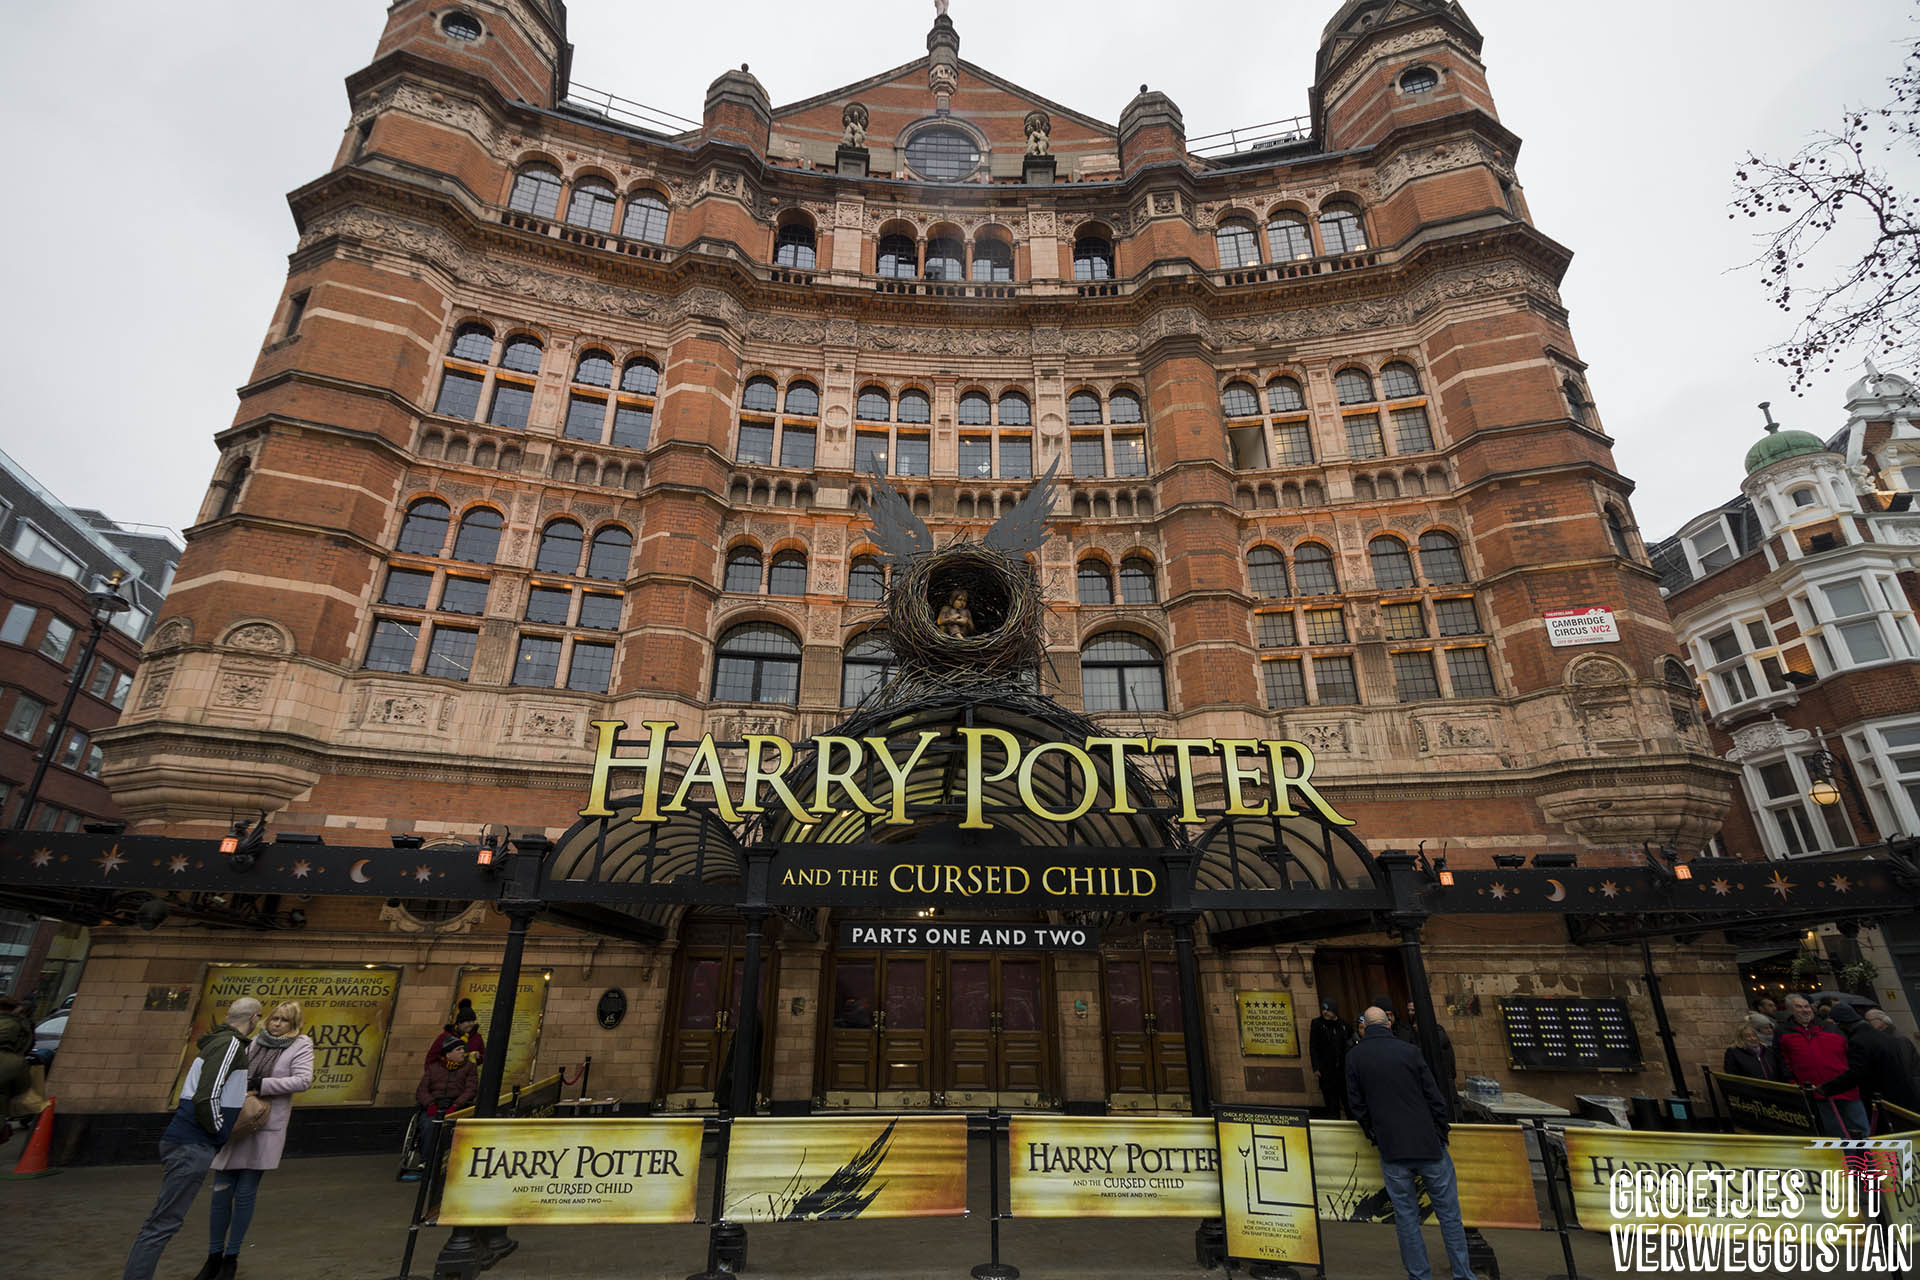 Buitenkant van Palace Theater, theater van Harry Potter and the Cursed Child in Londen